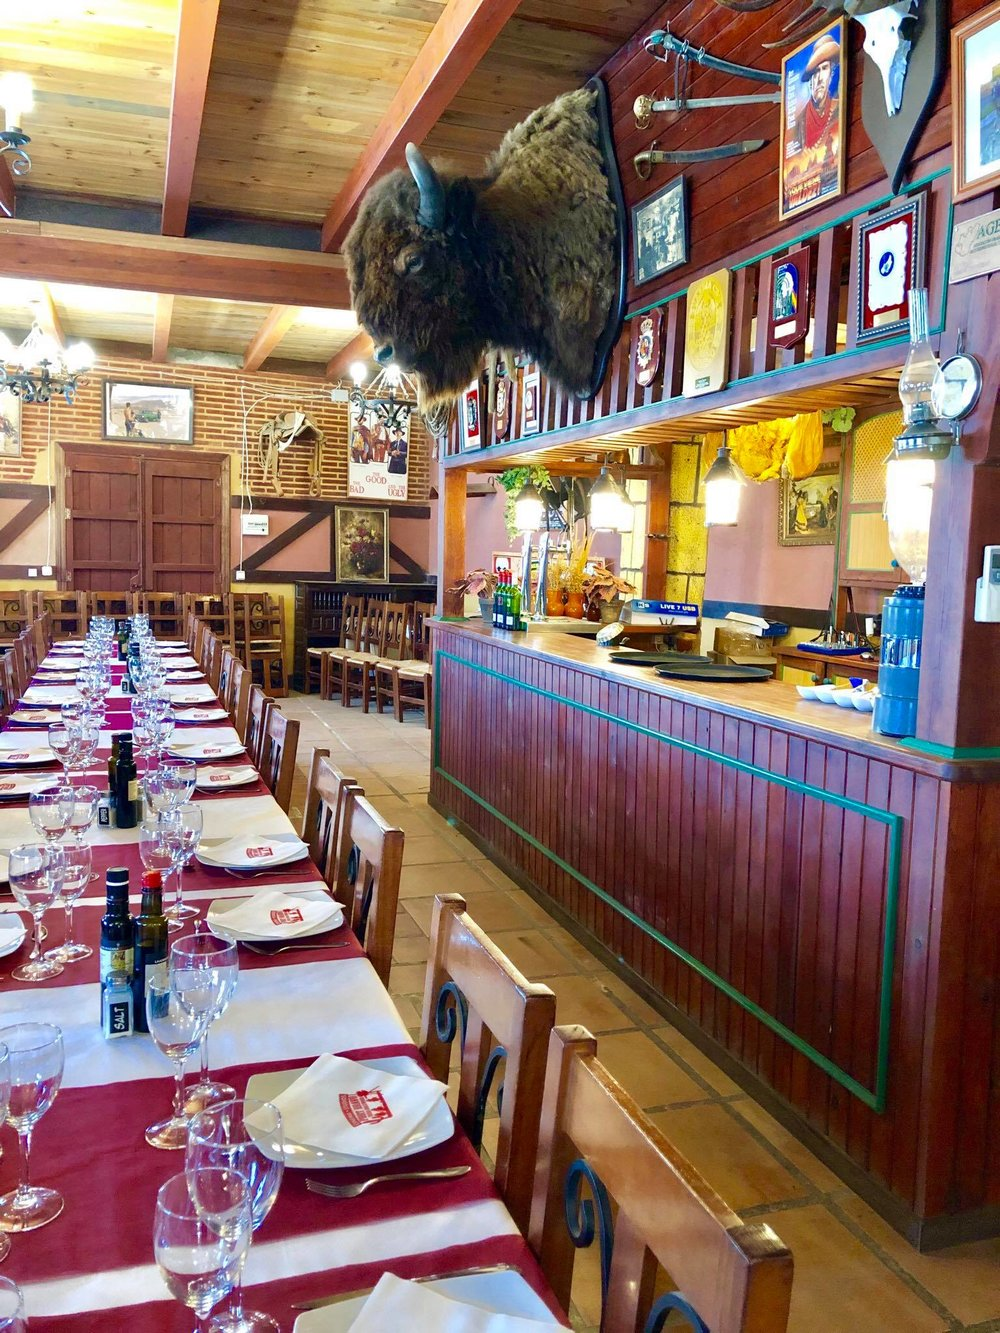 Kach Solo Travels in 2019 Full and fun itinerary here in Almeria, South of Spain22.jpg